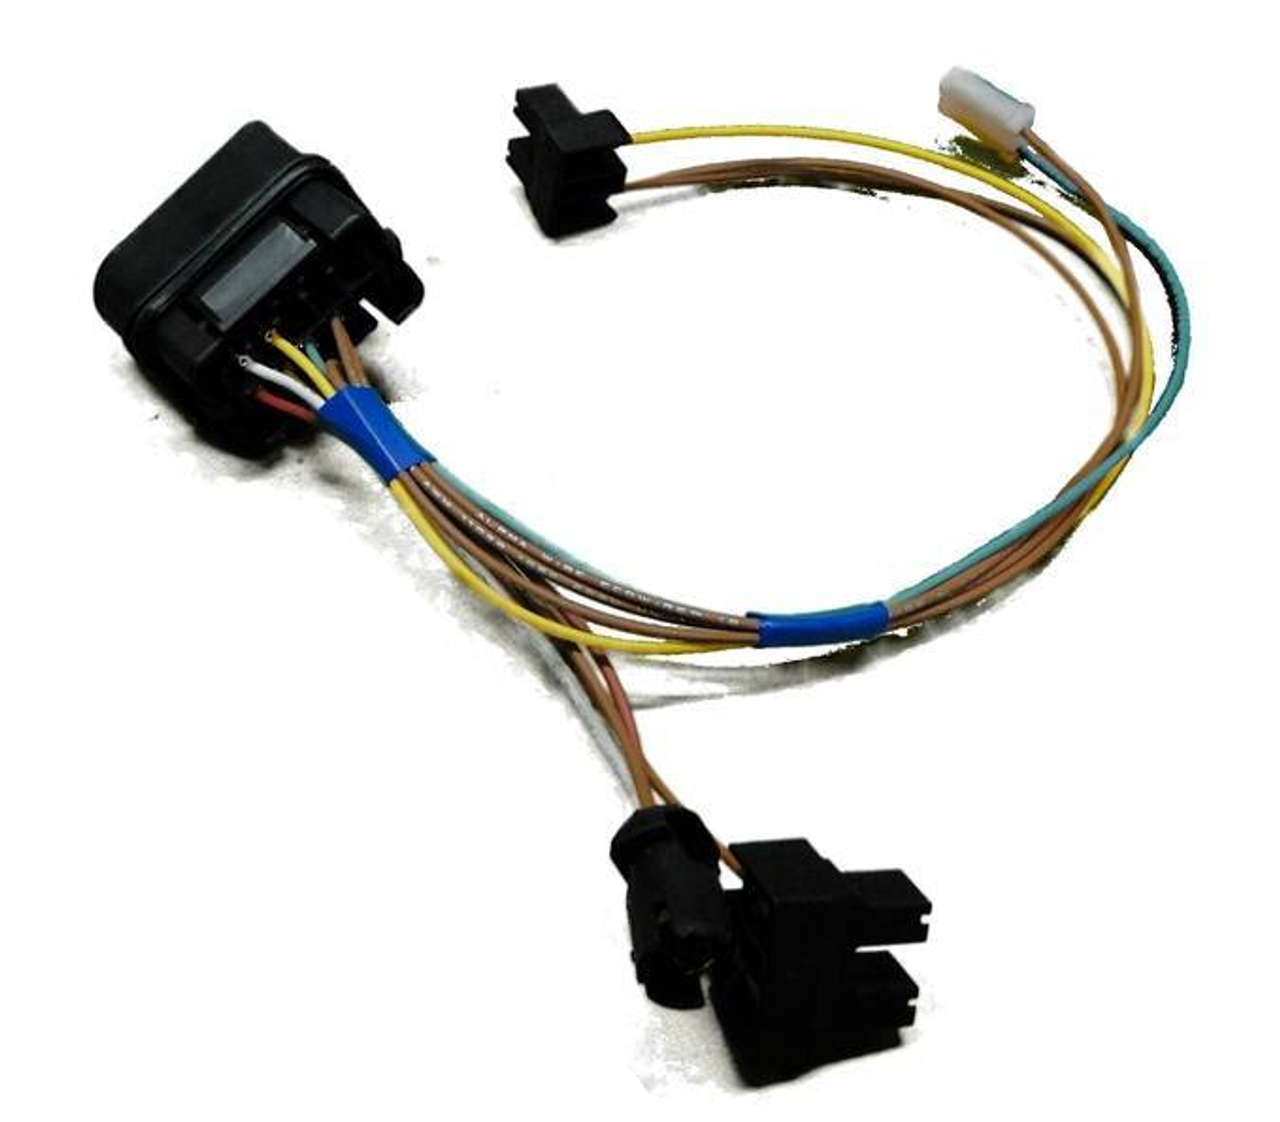 nd New, Complete VW MKIV Golf Headlight Wiring Harness 1999.5 - 2005 Vw Golf Headlight Wiring Harness on porsche 911 headlight wiring, jeep wrangler headlight wiring, bmw z3 headlight wiring, hyundai santa fe headlight wiring, ford focus headlight wiring, toyota headlight wiring, jeep cherokee headlight wiring, volvo xc70 headlight wiring, mazda 6 headlight wiring, hyundai accent headlight wiring, honda crv headlight wiring, bmw e46 headlight wiring, honda civic headlight wiring, subaru forester headlight wiring,